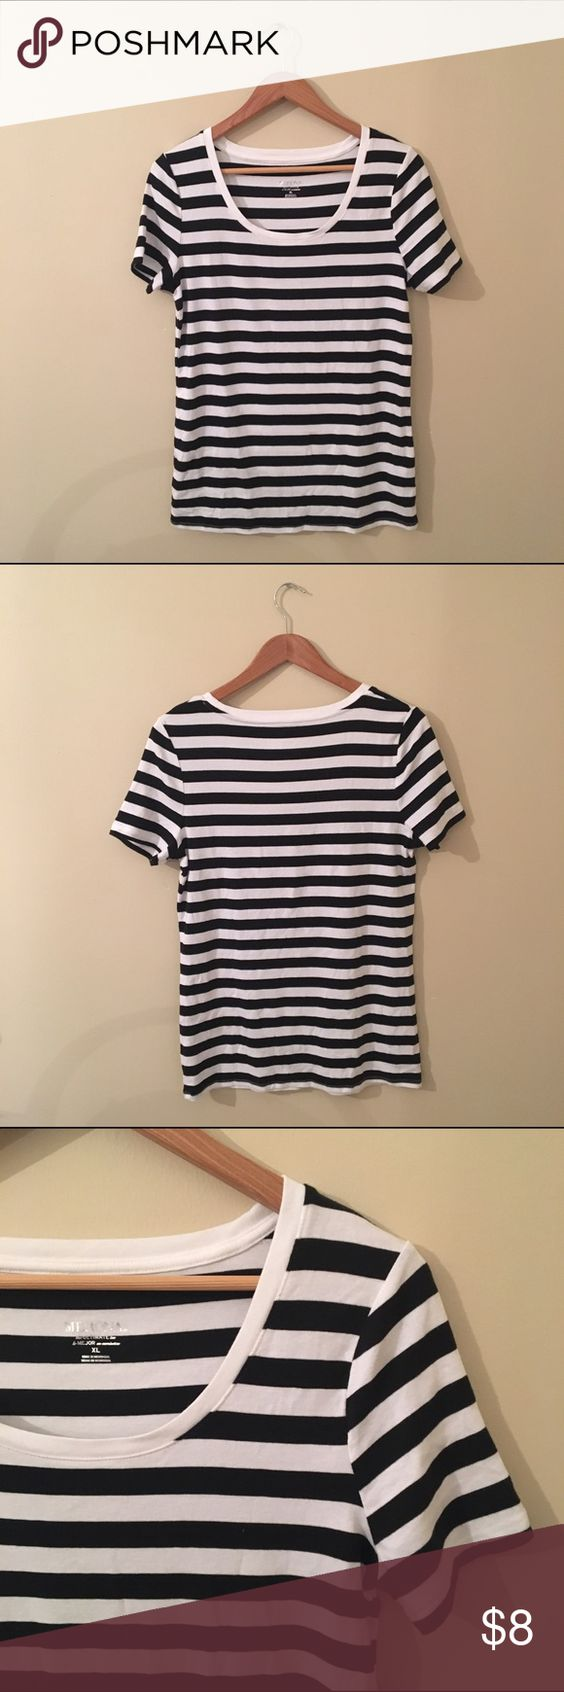 Merona Striped Tee Who doesn't need a super cute striped tee in their closet?! This adorable tee comes in an extra large and plenty of stretch. Perfect for pairing with some ankle booties and a slouchy cardigan! NWOT Merona Tops Tees - Short Sleeve